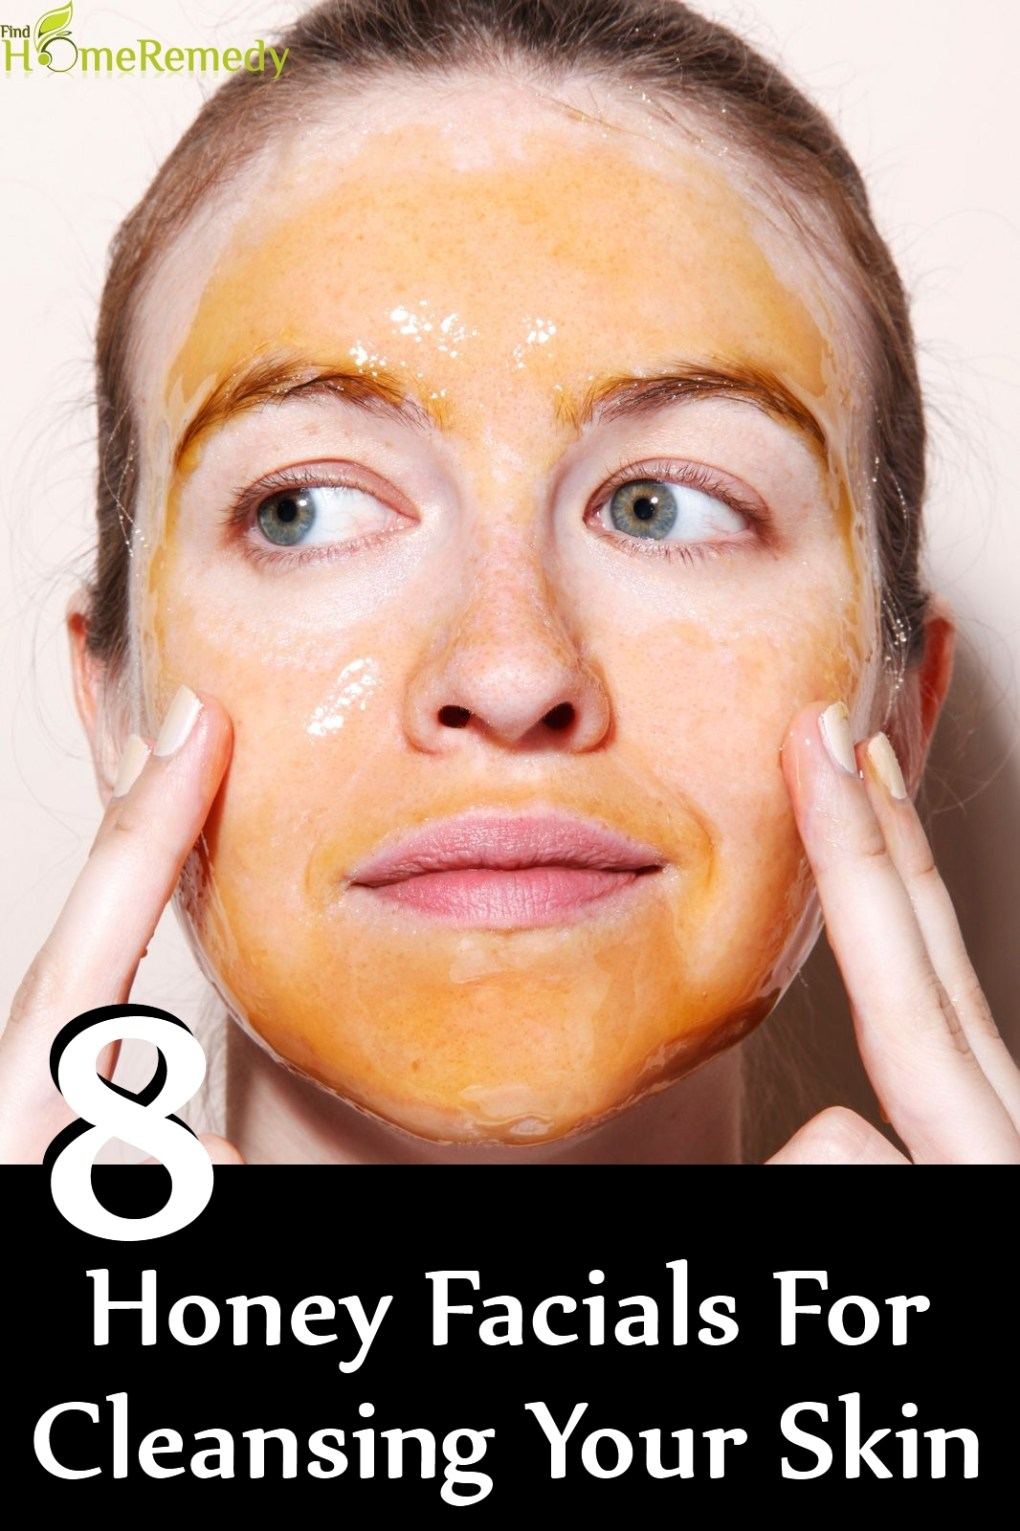 Honey Facials For Cleansing Your Skin